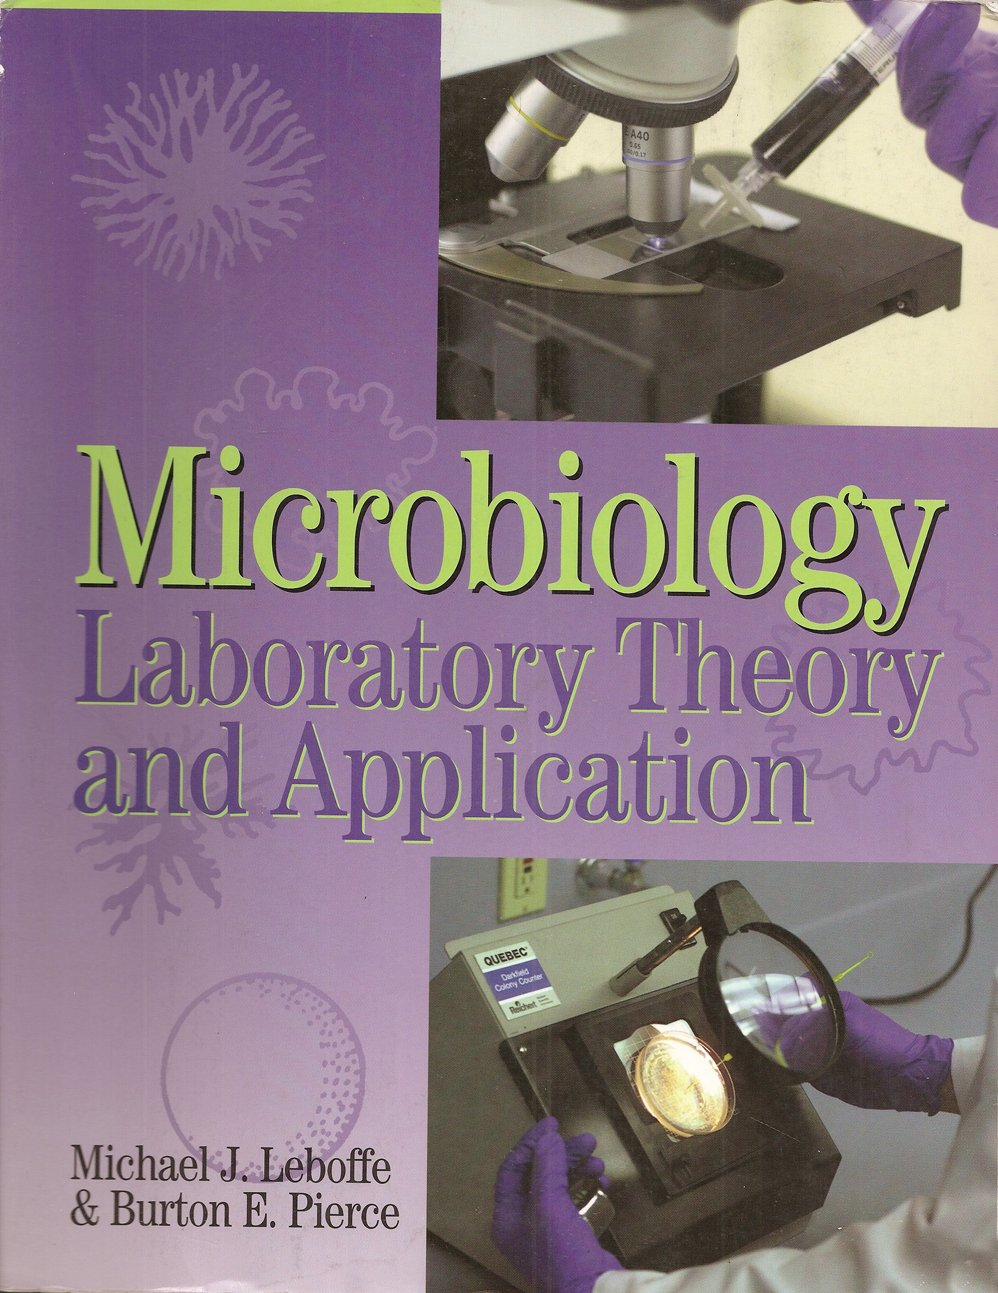 Microbiology Laboratory Theory and Application: Michael Leboffe, Burton  Pierce: 9780895826121: Textbooks: Amazon Canada